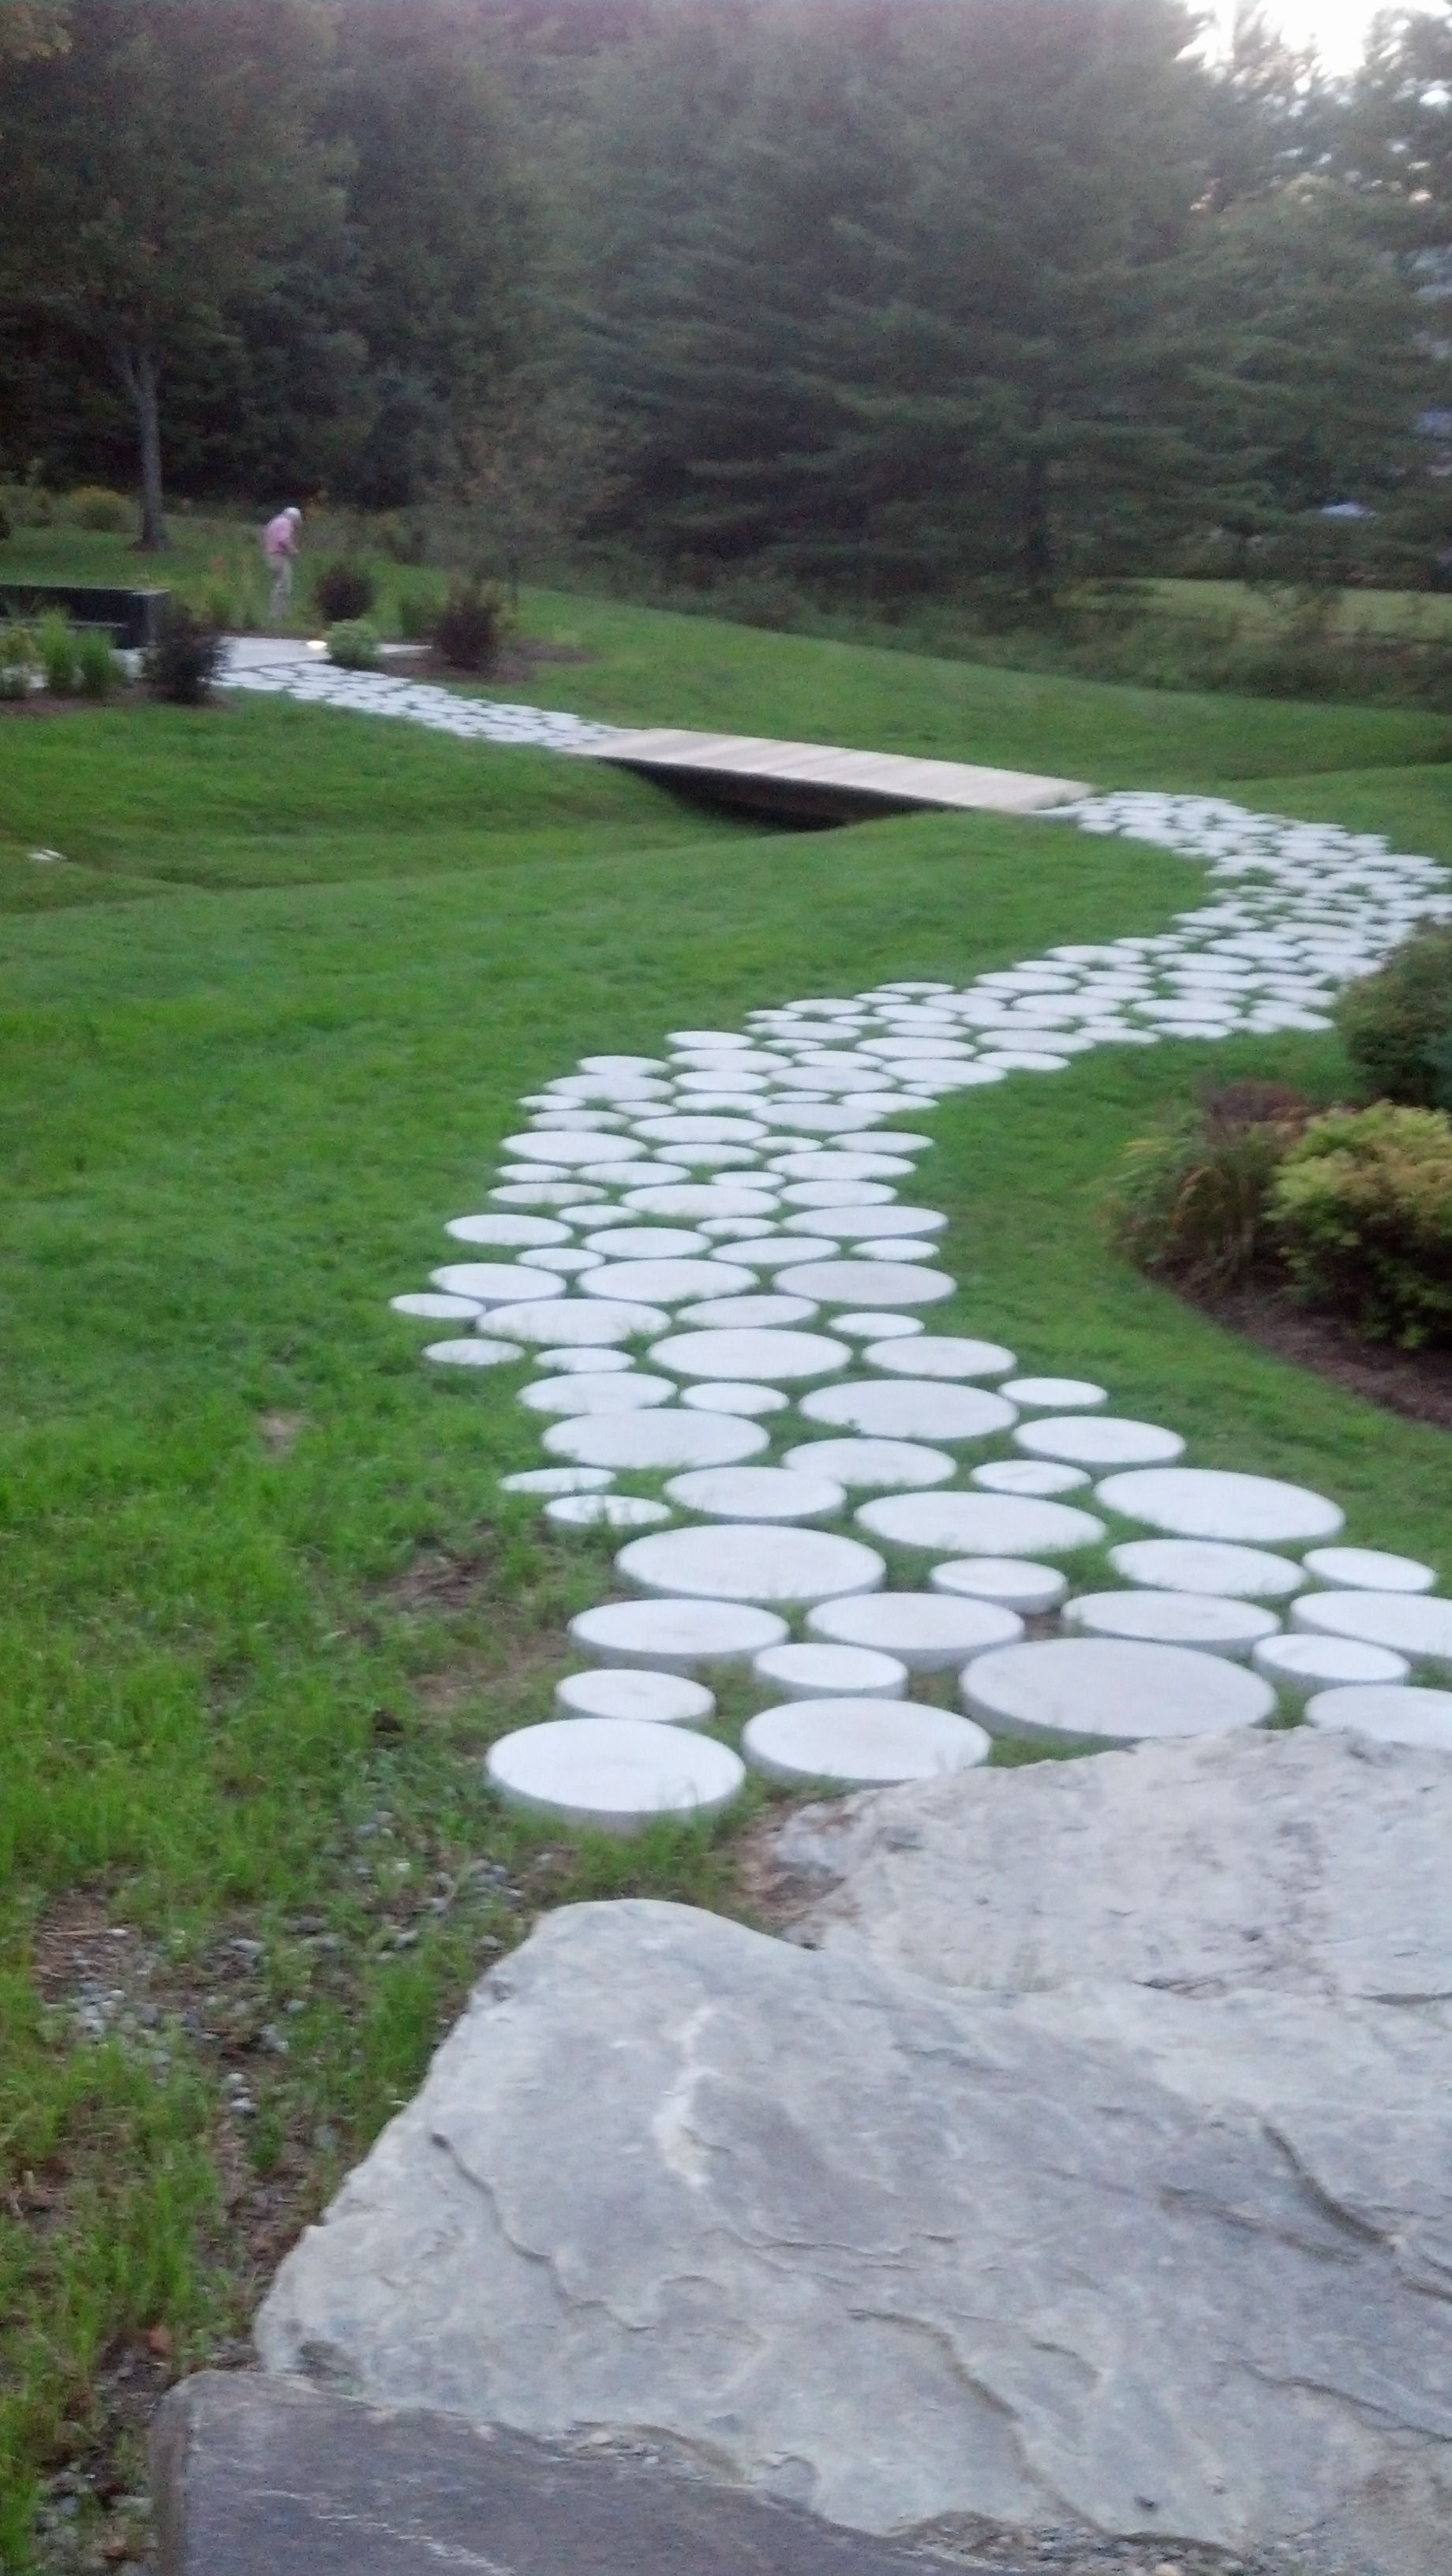 Using Circular Concrete Pavers Of Different Sizes To Create A